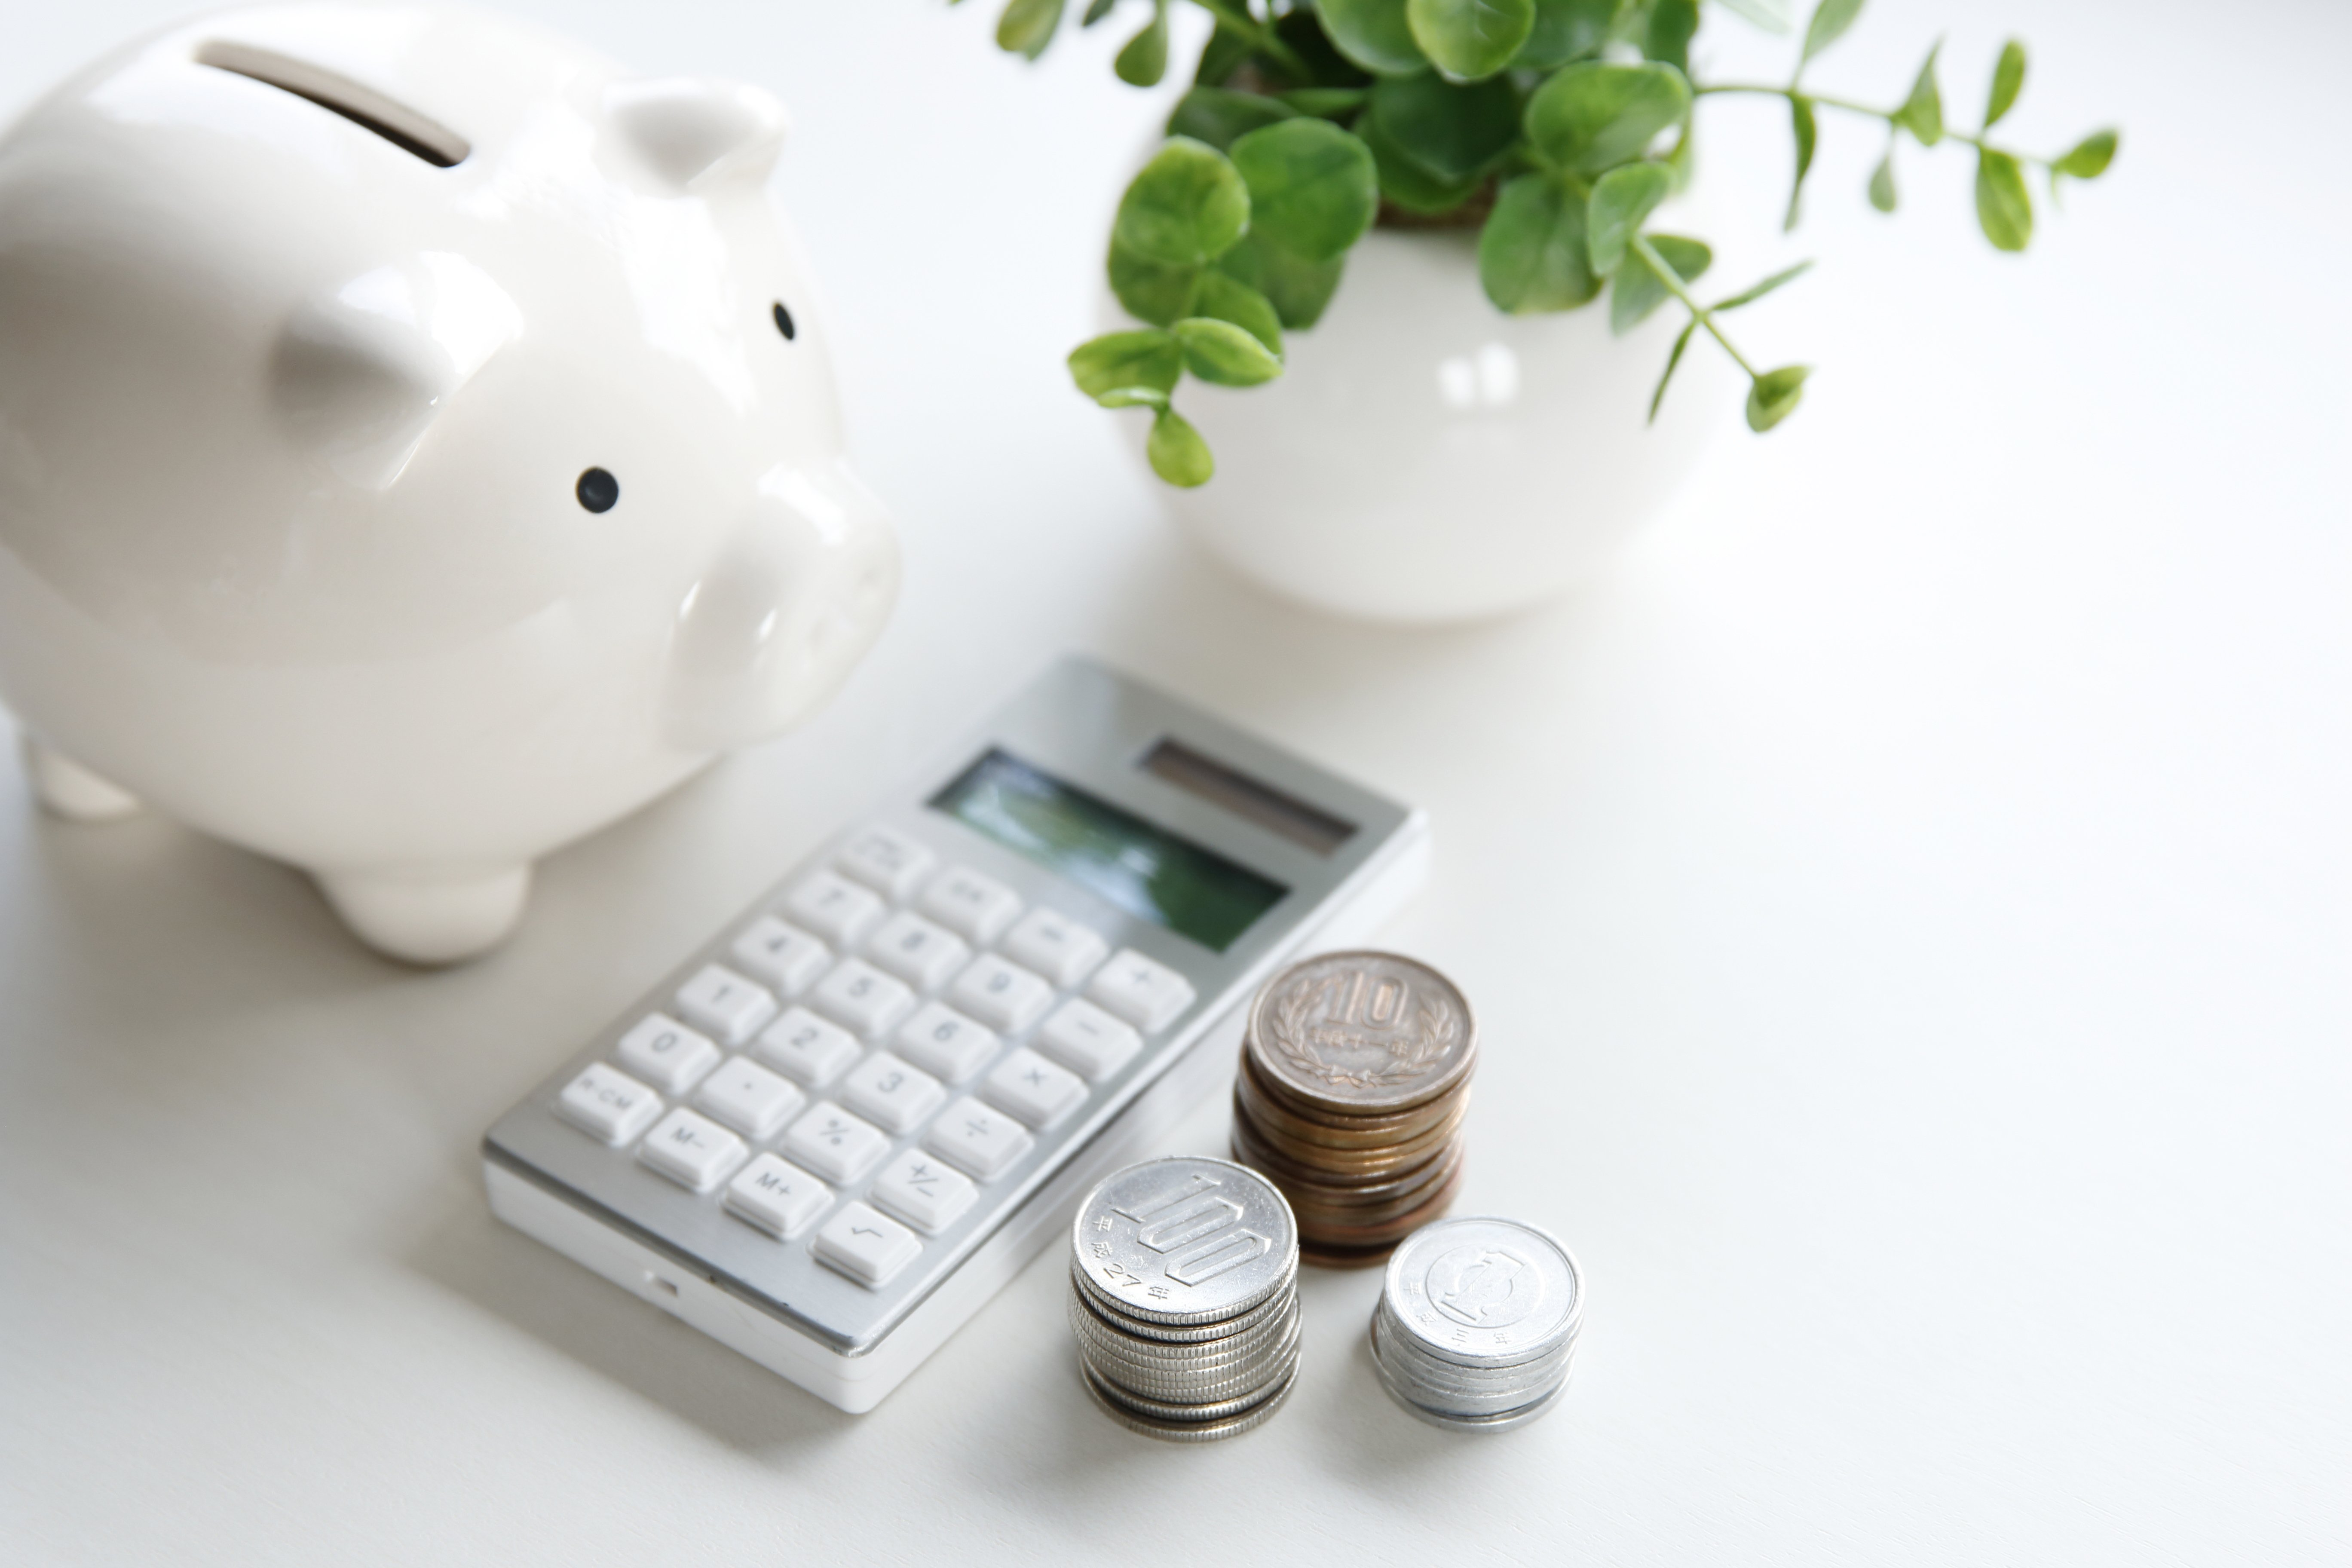 A white piggy bank, electronic calculator, and coins